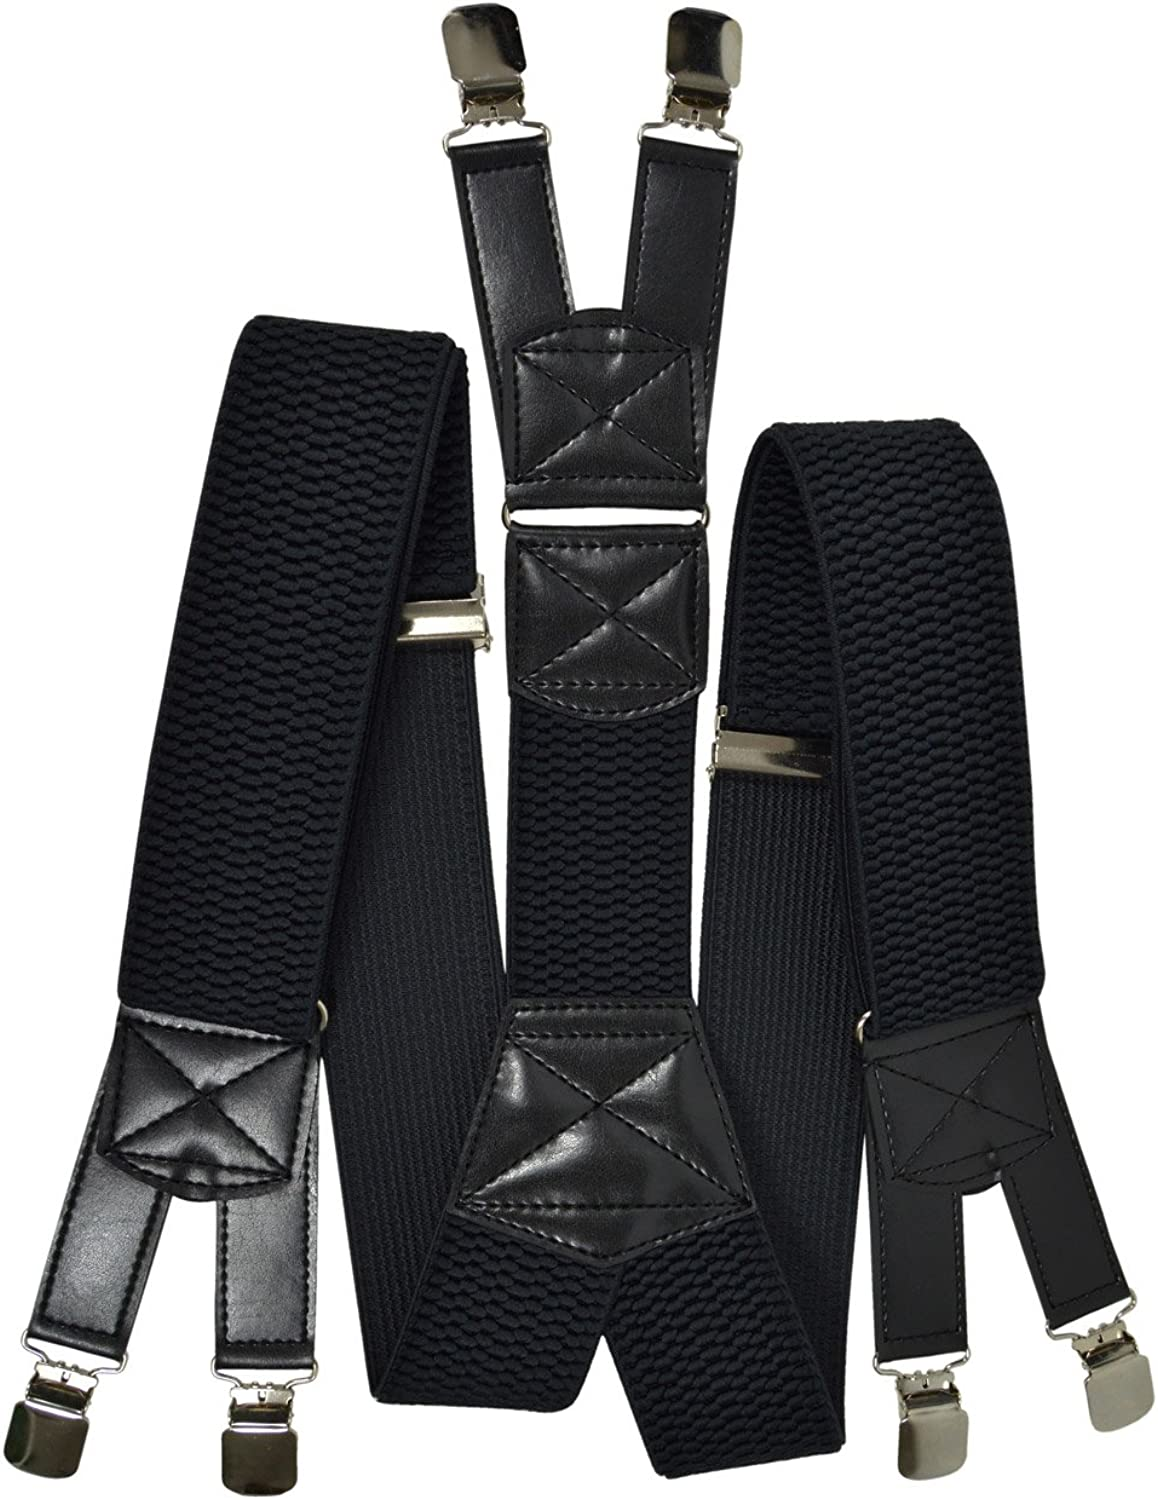 Thick Fabric Heavy Duty X-Shape Braces//Suspenders with 6 Clips Design Mens XXL Extra Wide 5cm